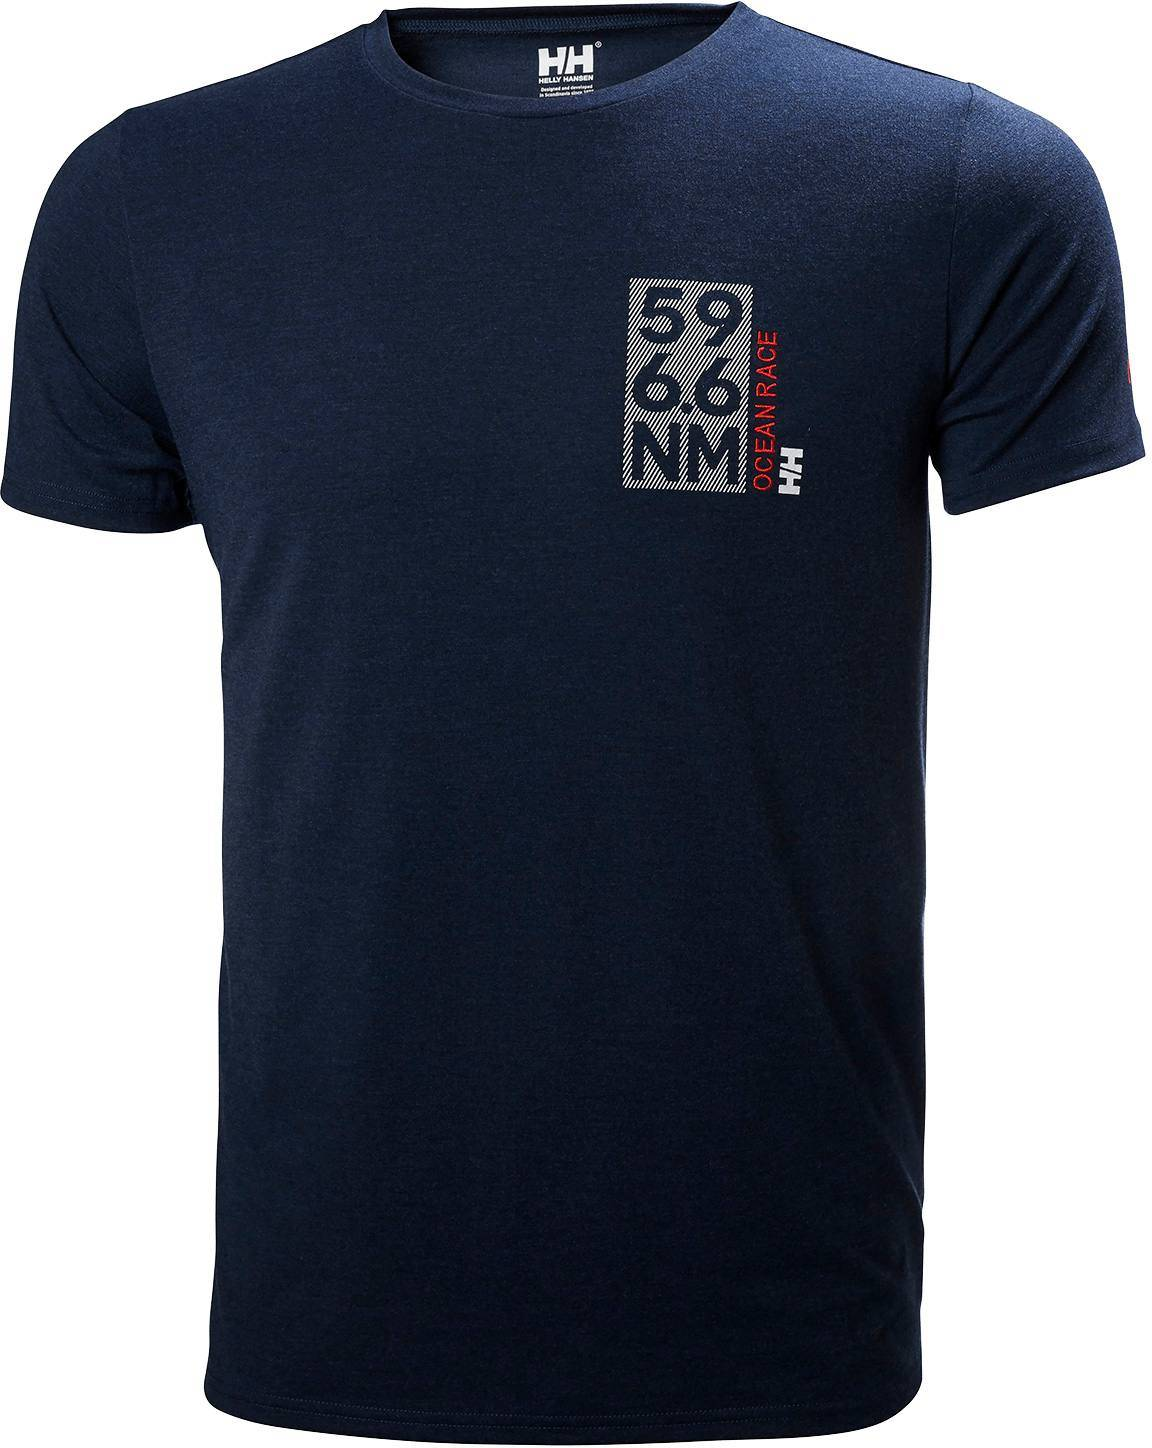 Helly Hansen HP Shore Tee Navy XL